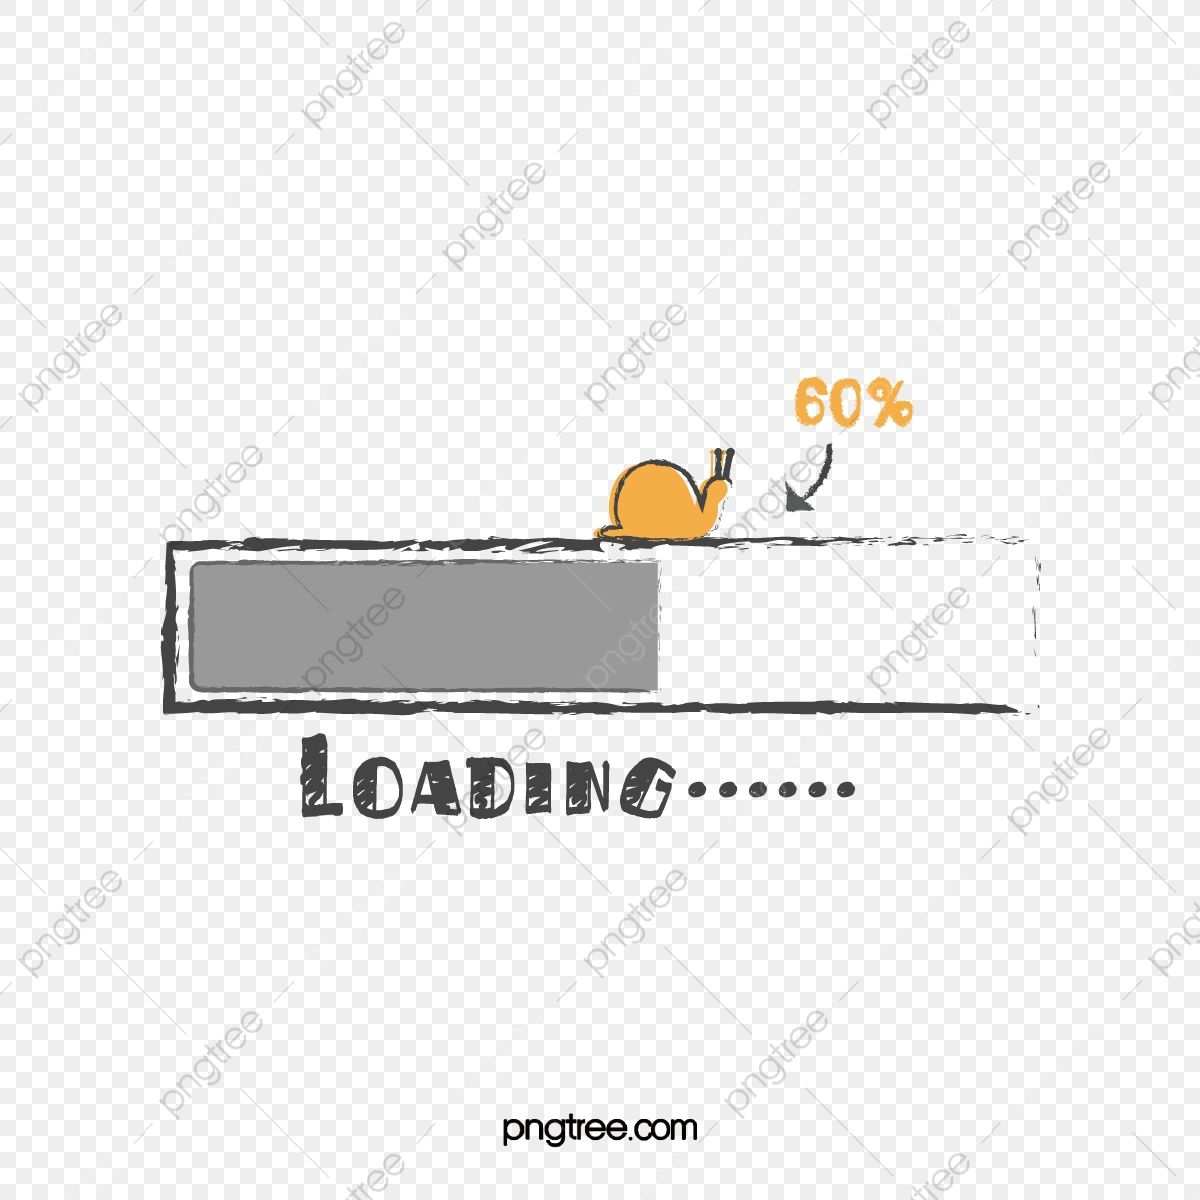 Simple Hand Painted Snail Loading Progress Bar Hand Painted Snail Progress Bar Png And Vector With Transparent Background For Free Download Progress Bar Hand Painted Progress